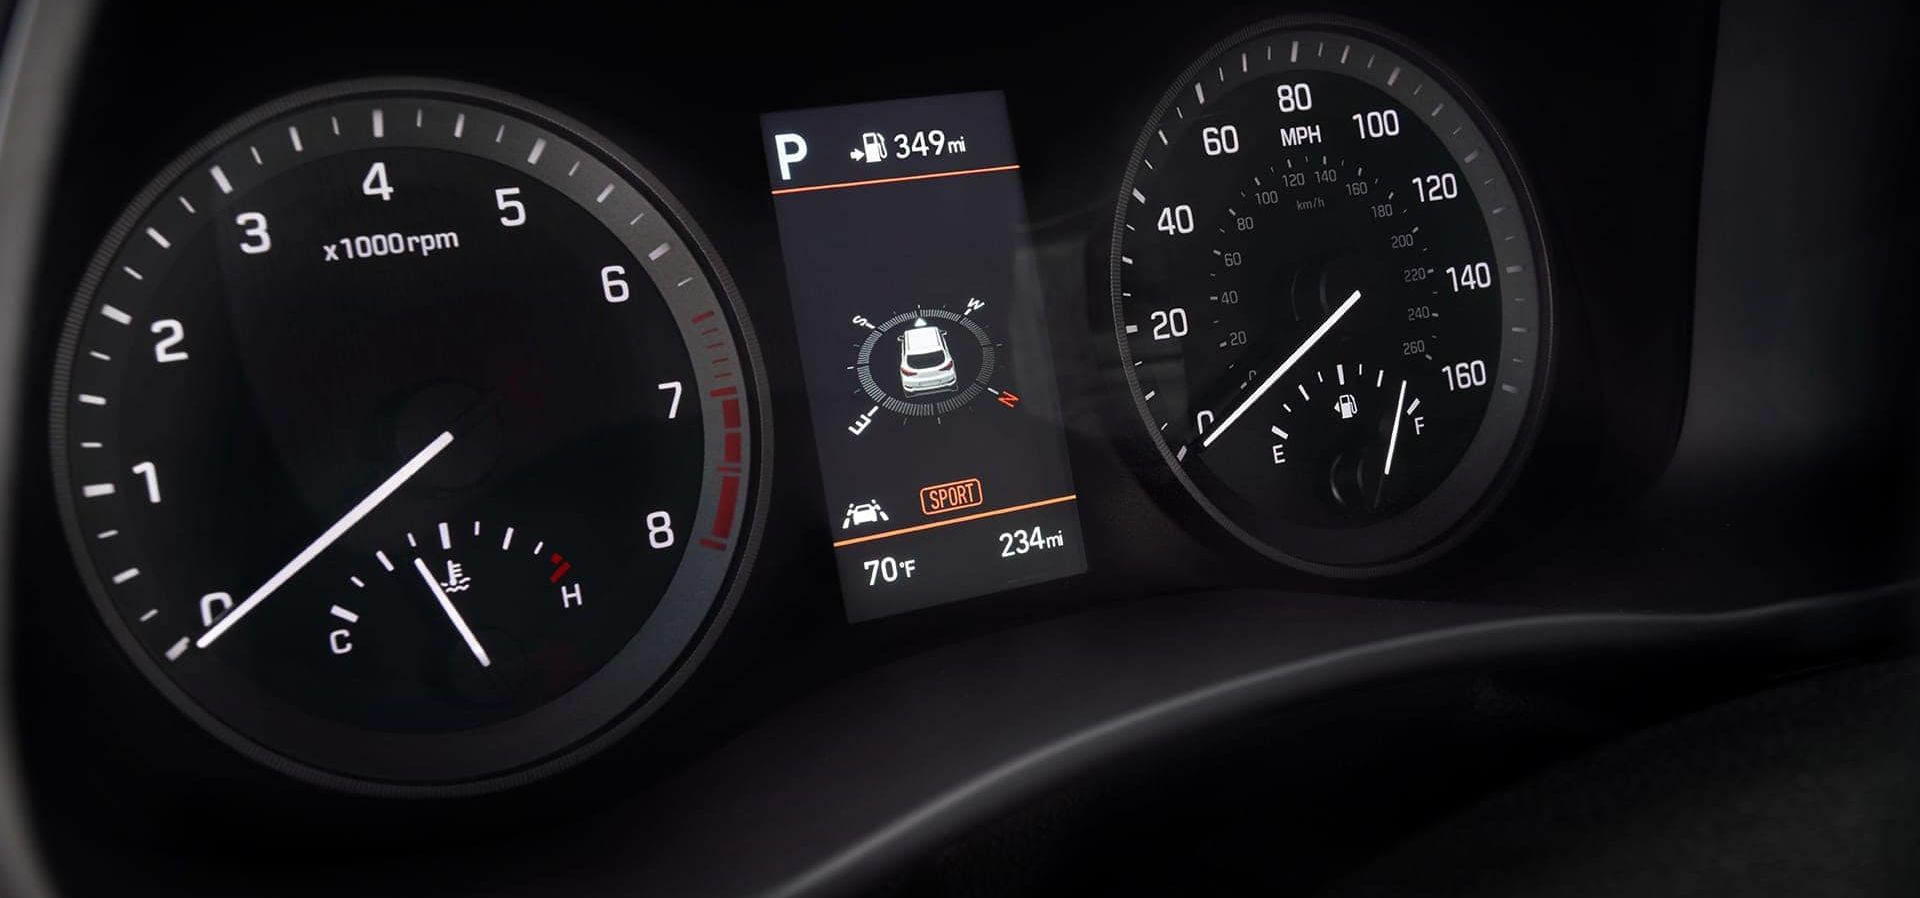 Instrument Cluster in the Hyundai Tucson